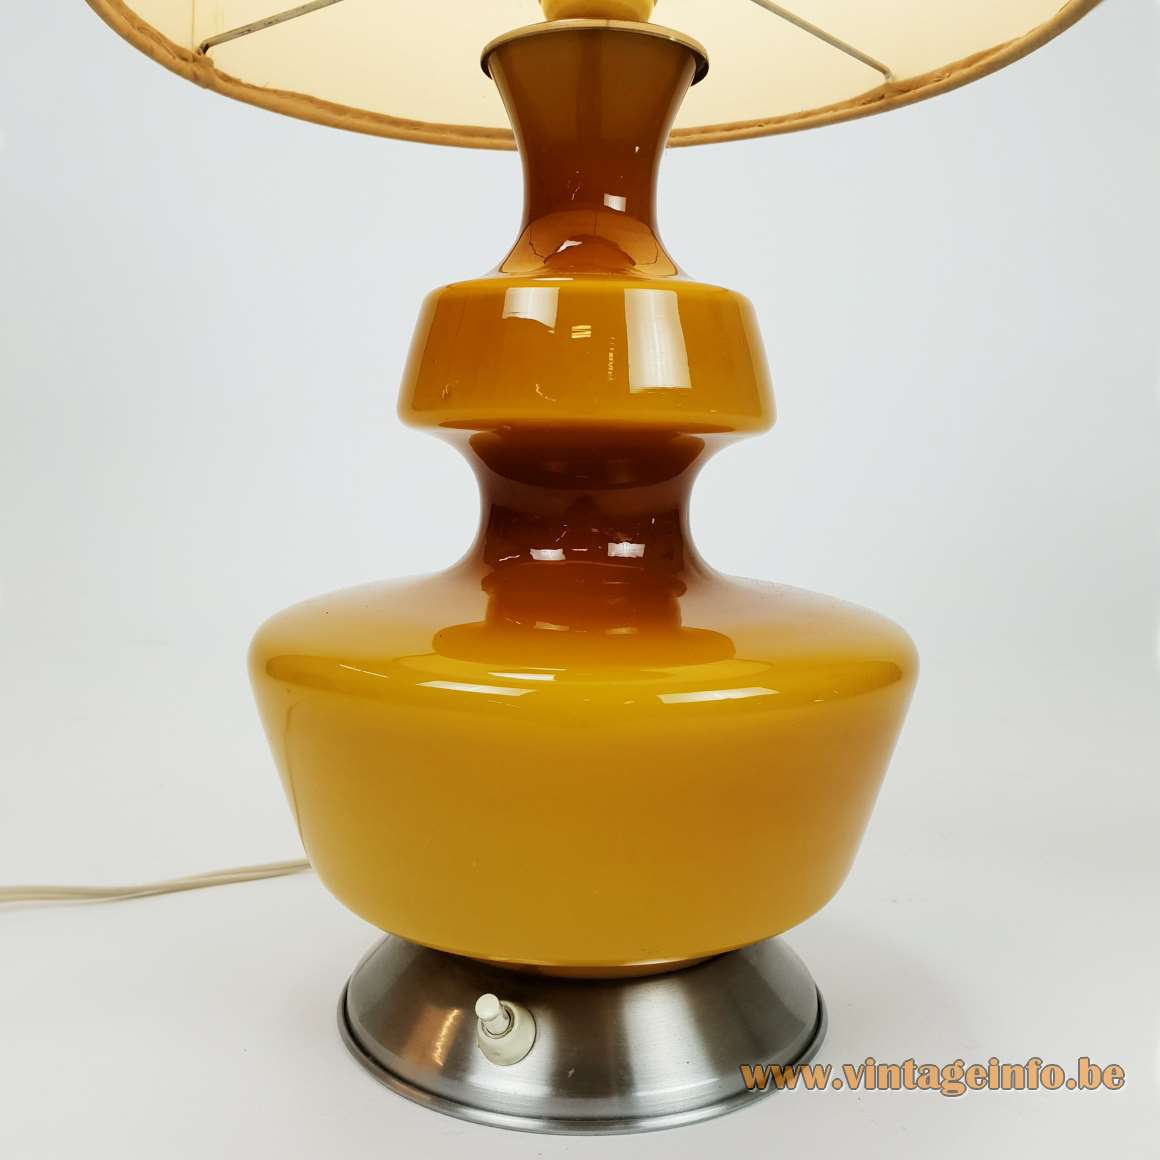 Holmegaard table lamp aluminium base yellow-ochre glass round striped fabric lampshade 1960s 1970s Massive Belgium